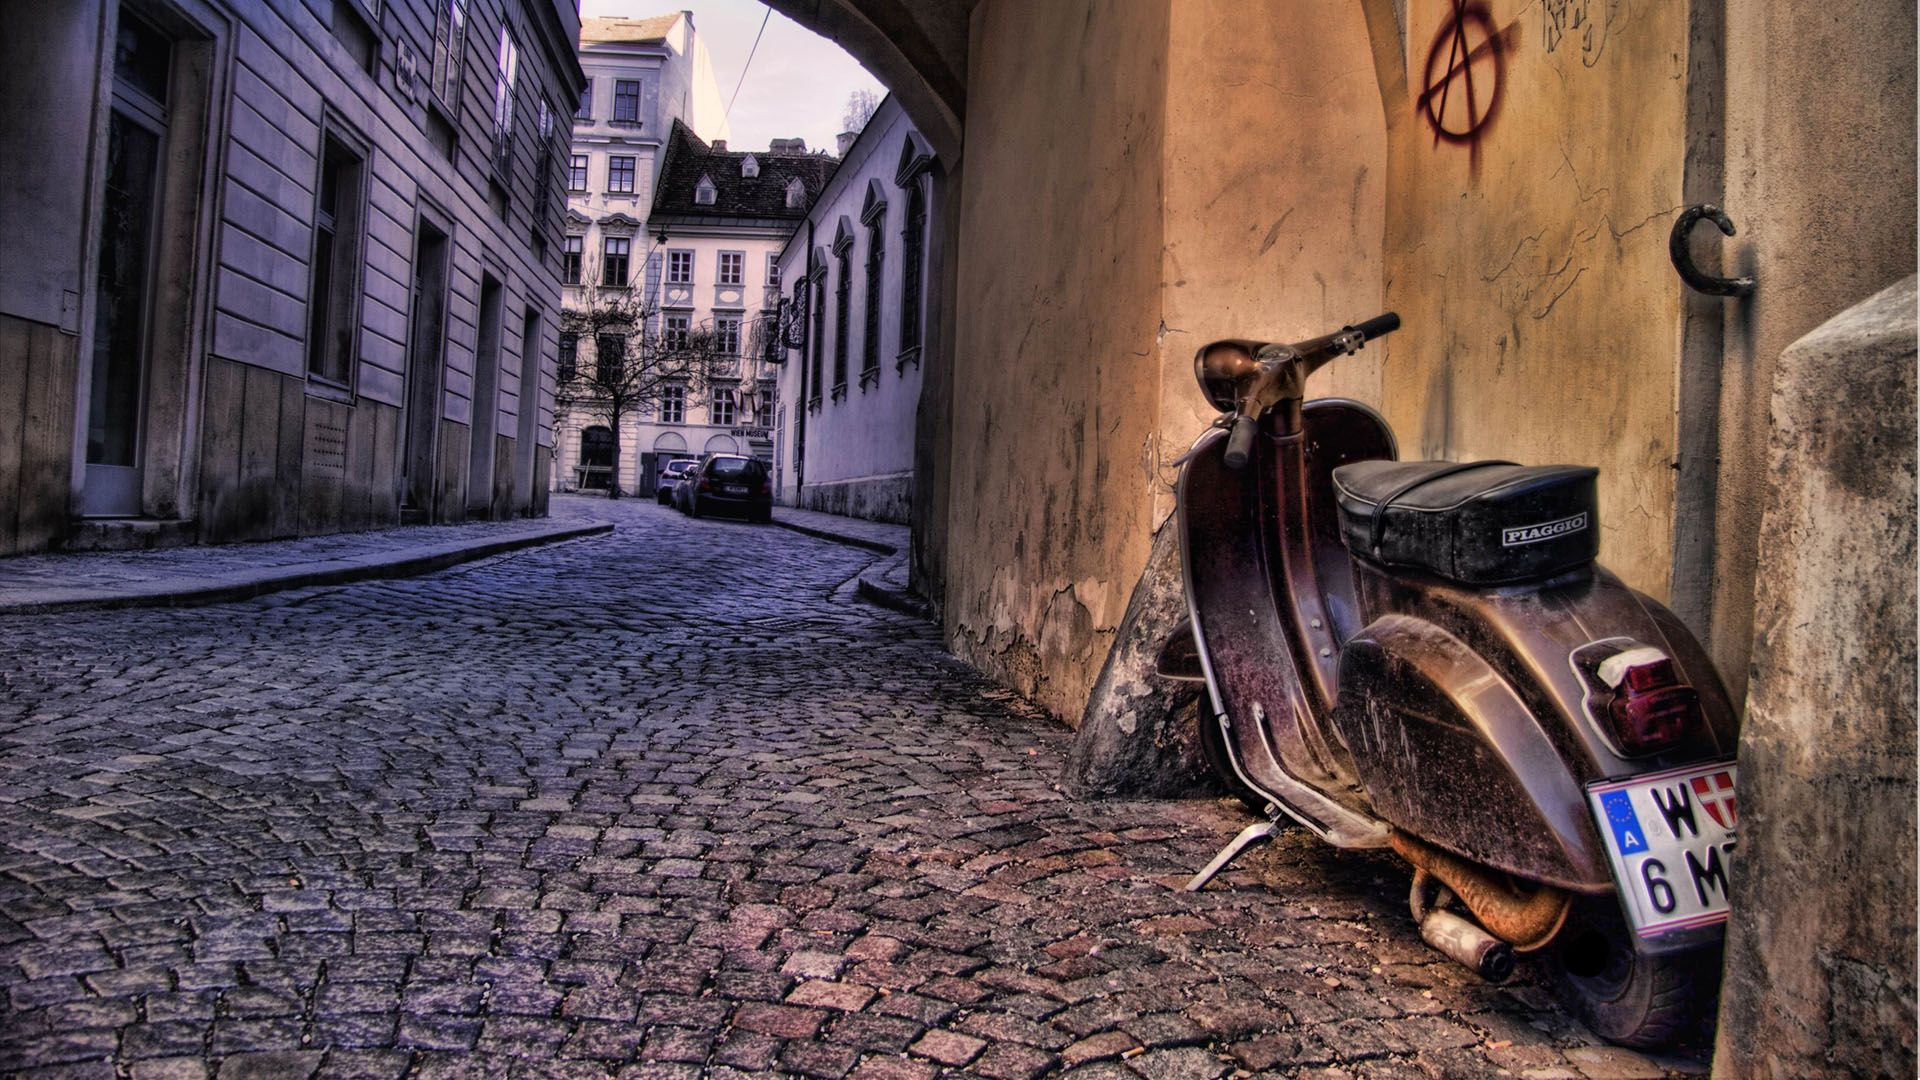 50 Scooters Old Scooter Italy Hd Px Wallpaper With 1920x1080 Resolution 1293 Italy Hd Wallpapers